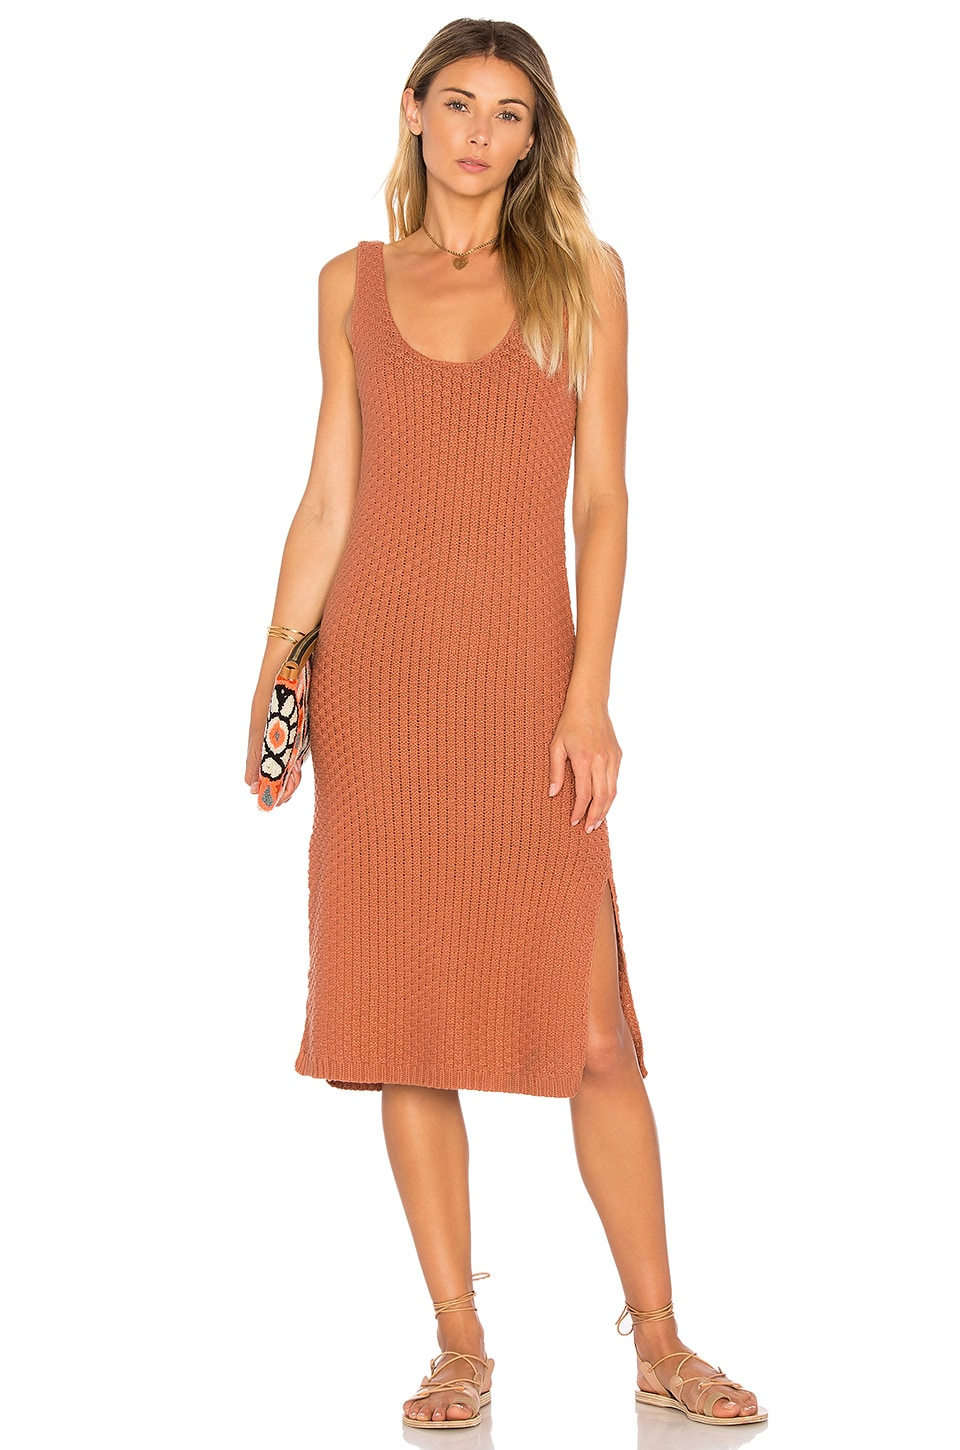 Julia Knit Dress by Lovers + Friends